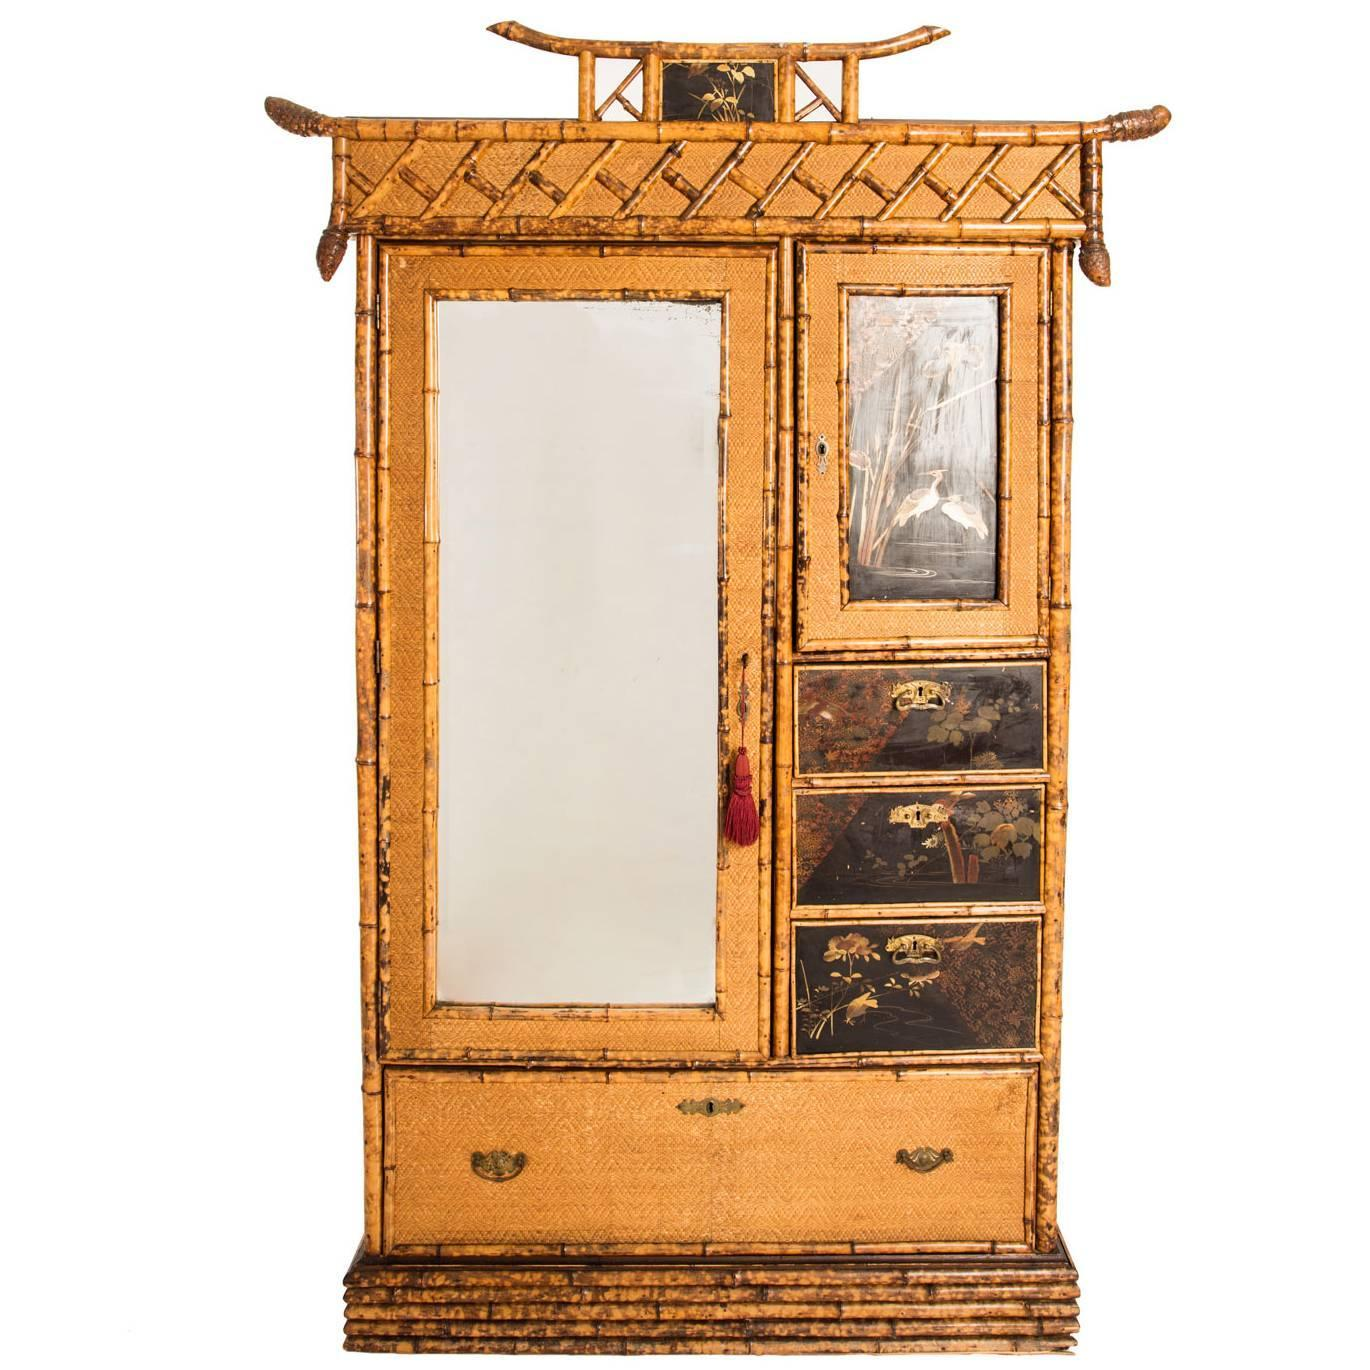 bamboo armoire english circa 1900s for sale at 1stdibs. Black Bedroom Furniture Sets. Home Design Ideas